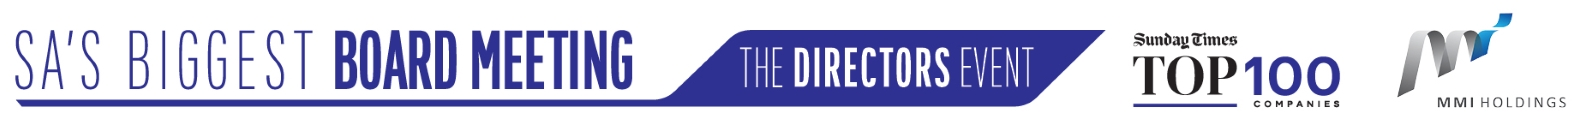 The Directors Event Retina Logo